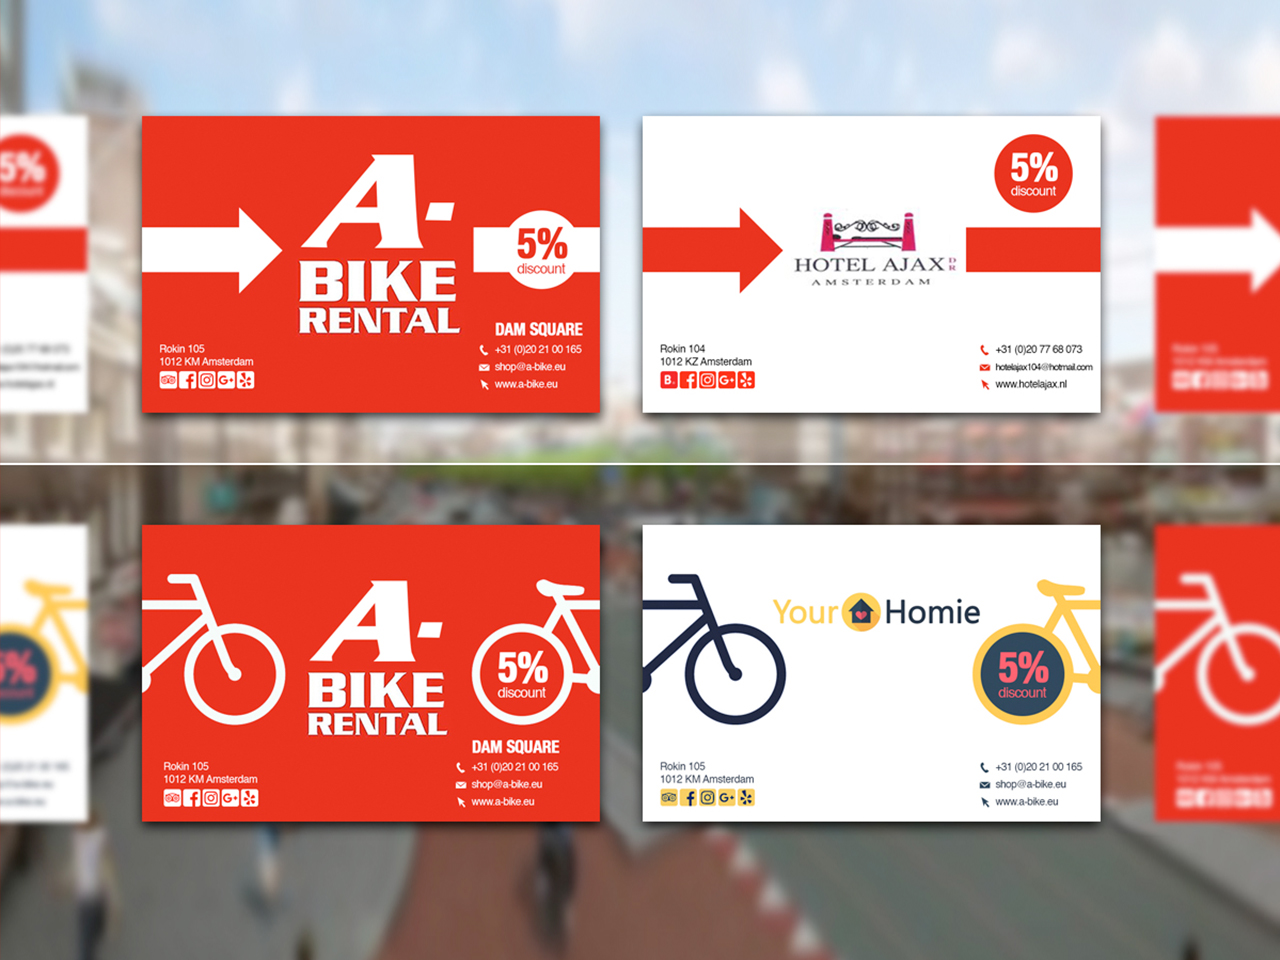 Abike Discount Cards